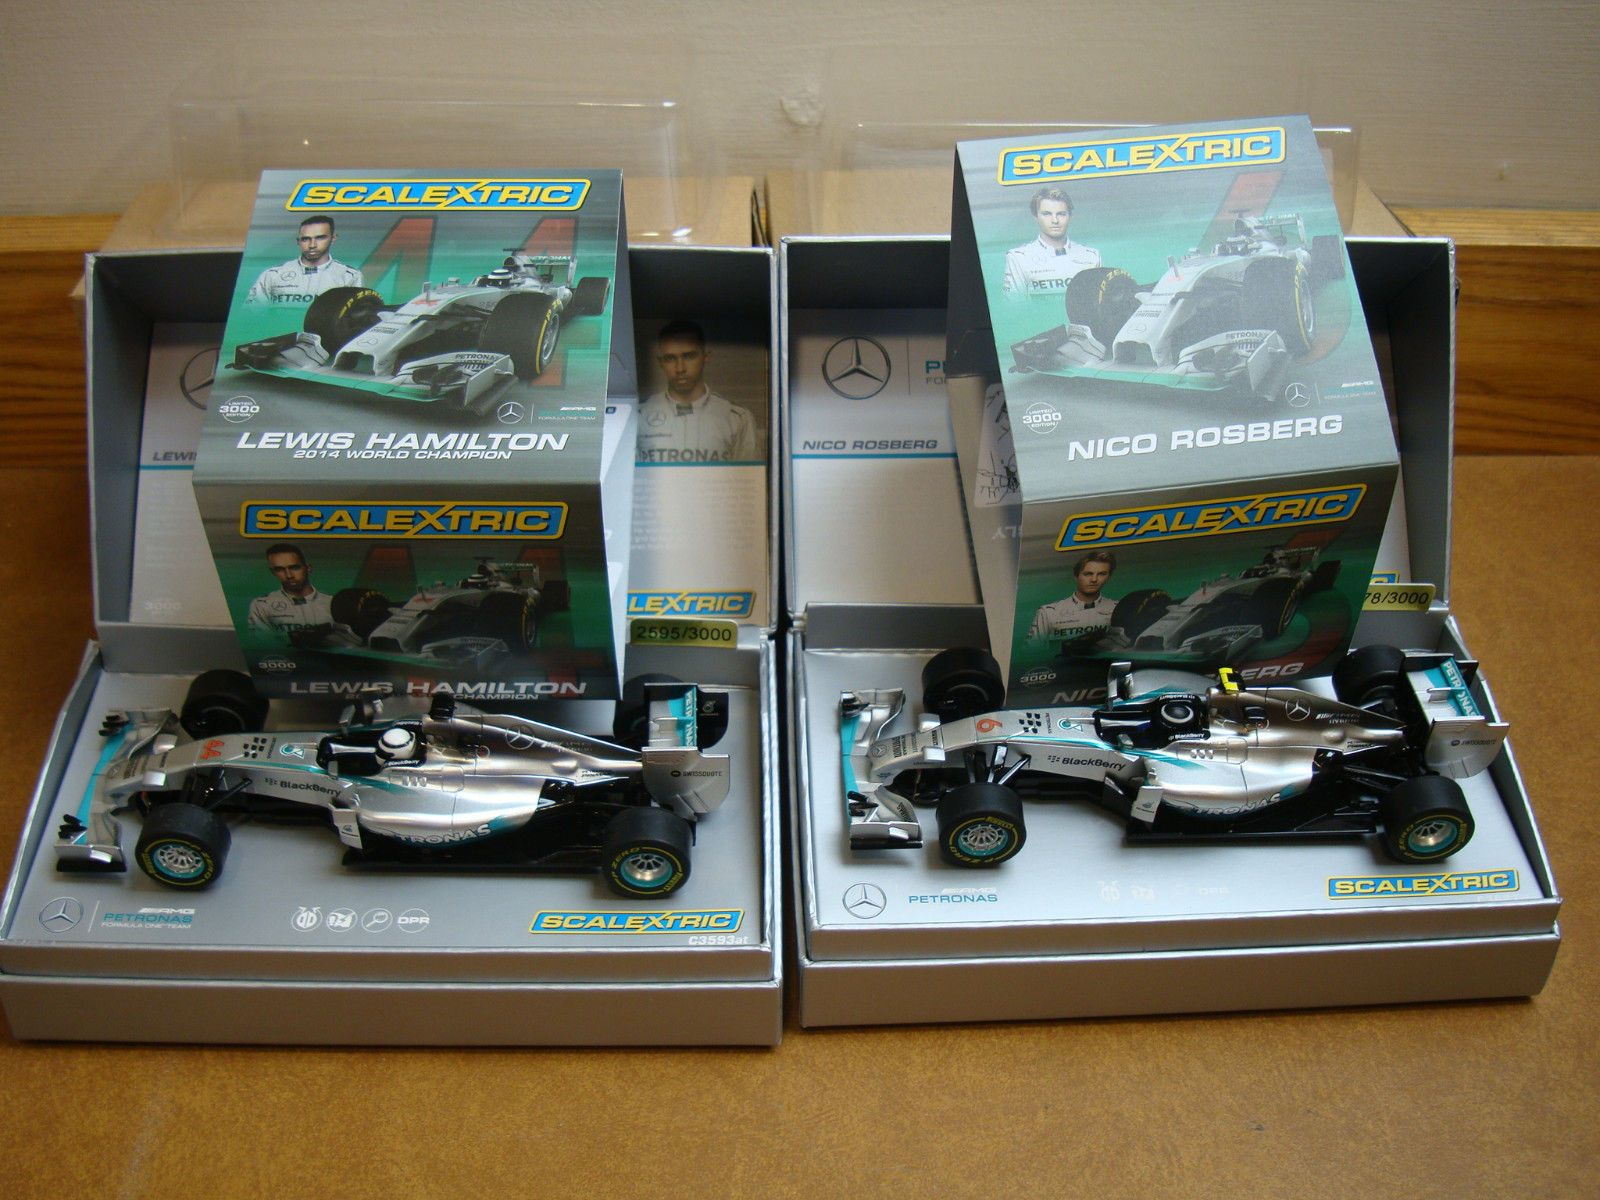 Scalextric C3621A and C3593A  Mercedes F1 2014  Nico Rosberg Lewis Hamin  https://t.co/aV5f7w2bAe https://t.co/Iqbh7FYnmo